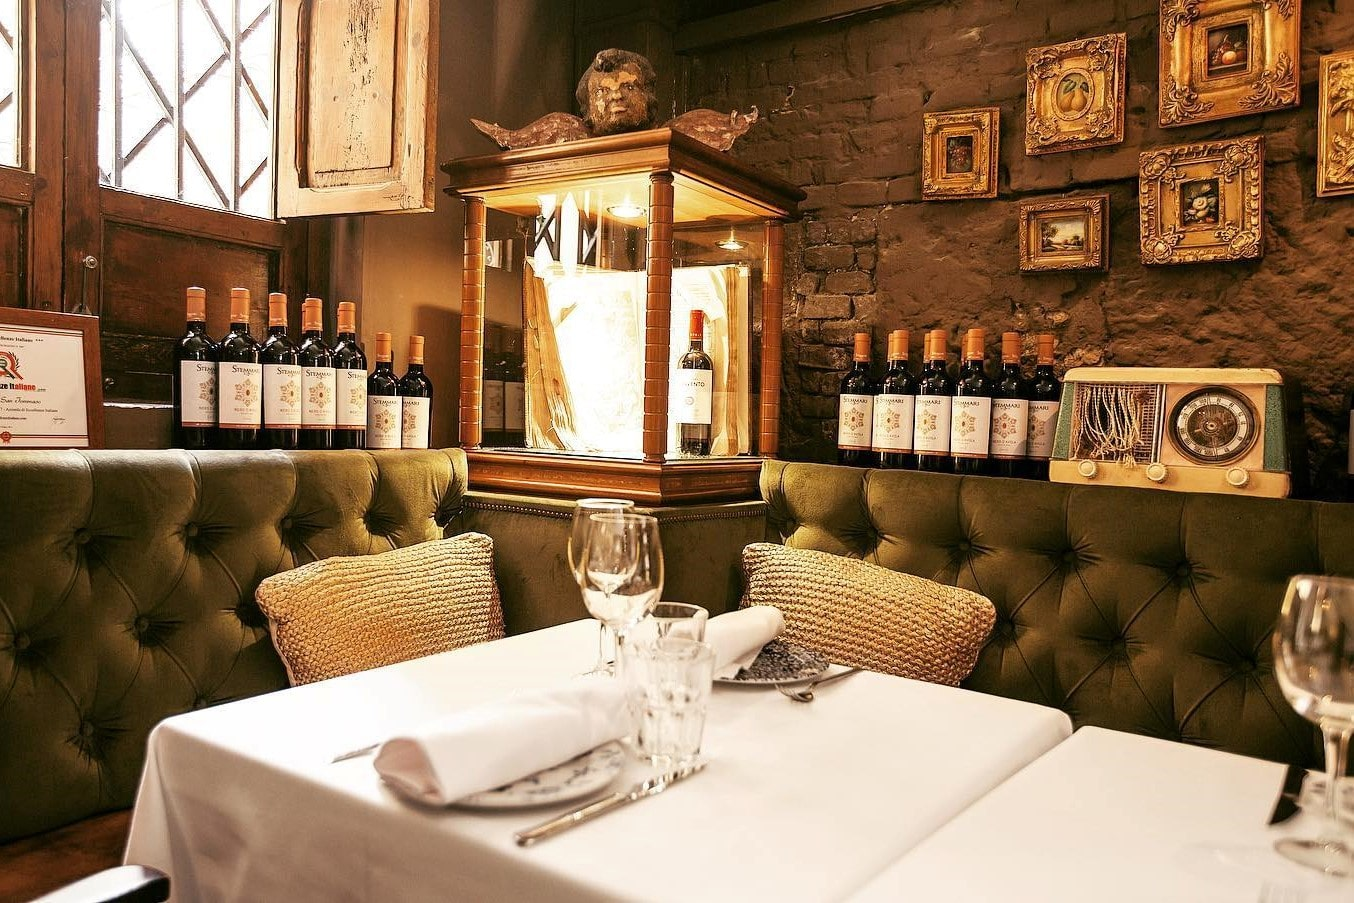 italian-restaurant-in-wine-cellar-san-tommaso